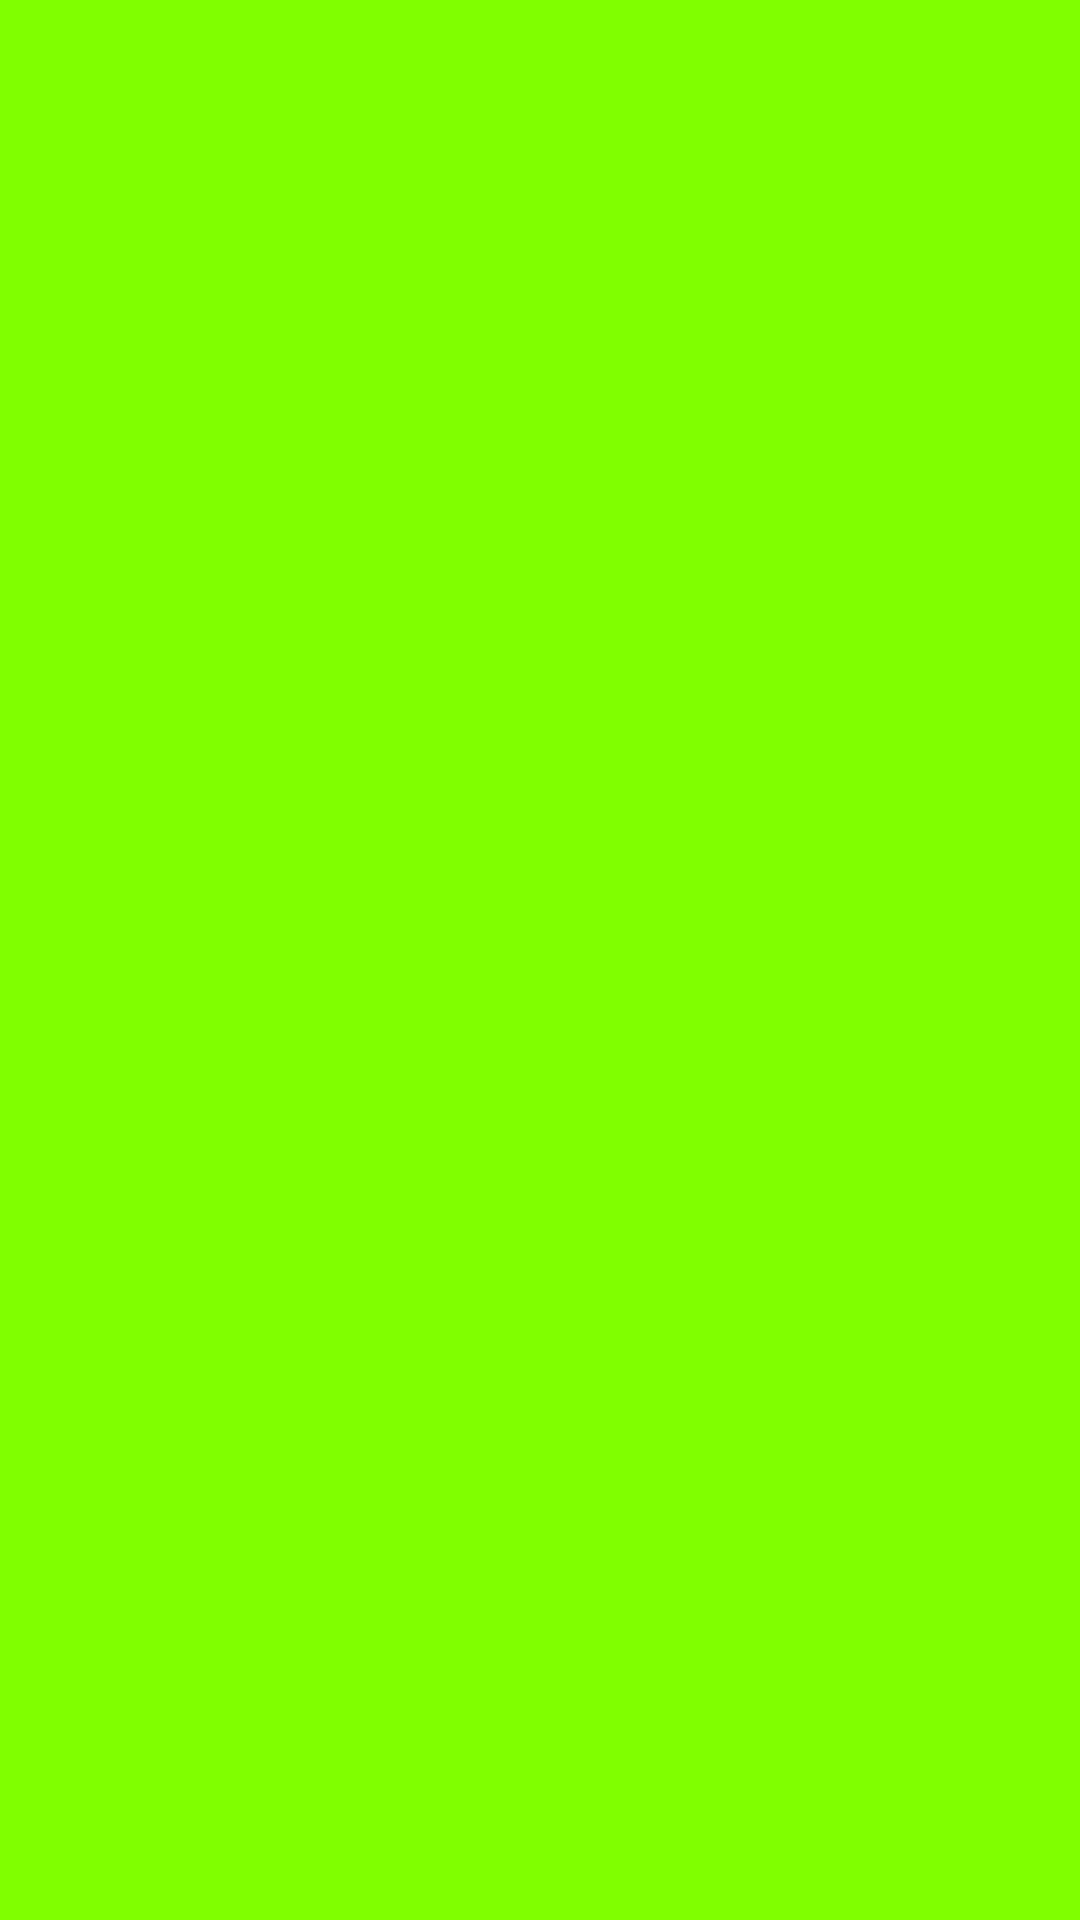 1080x1920 Chartreuse For Web Solid Color Background